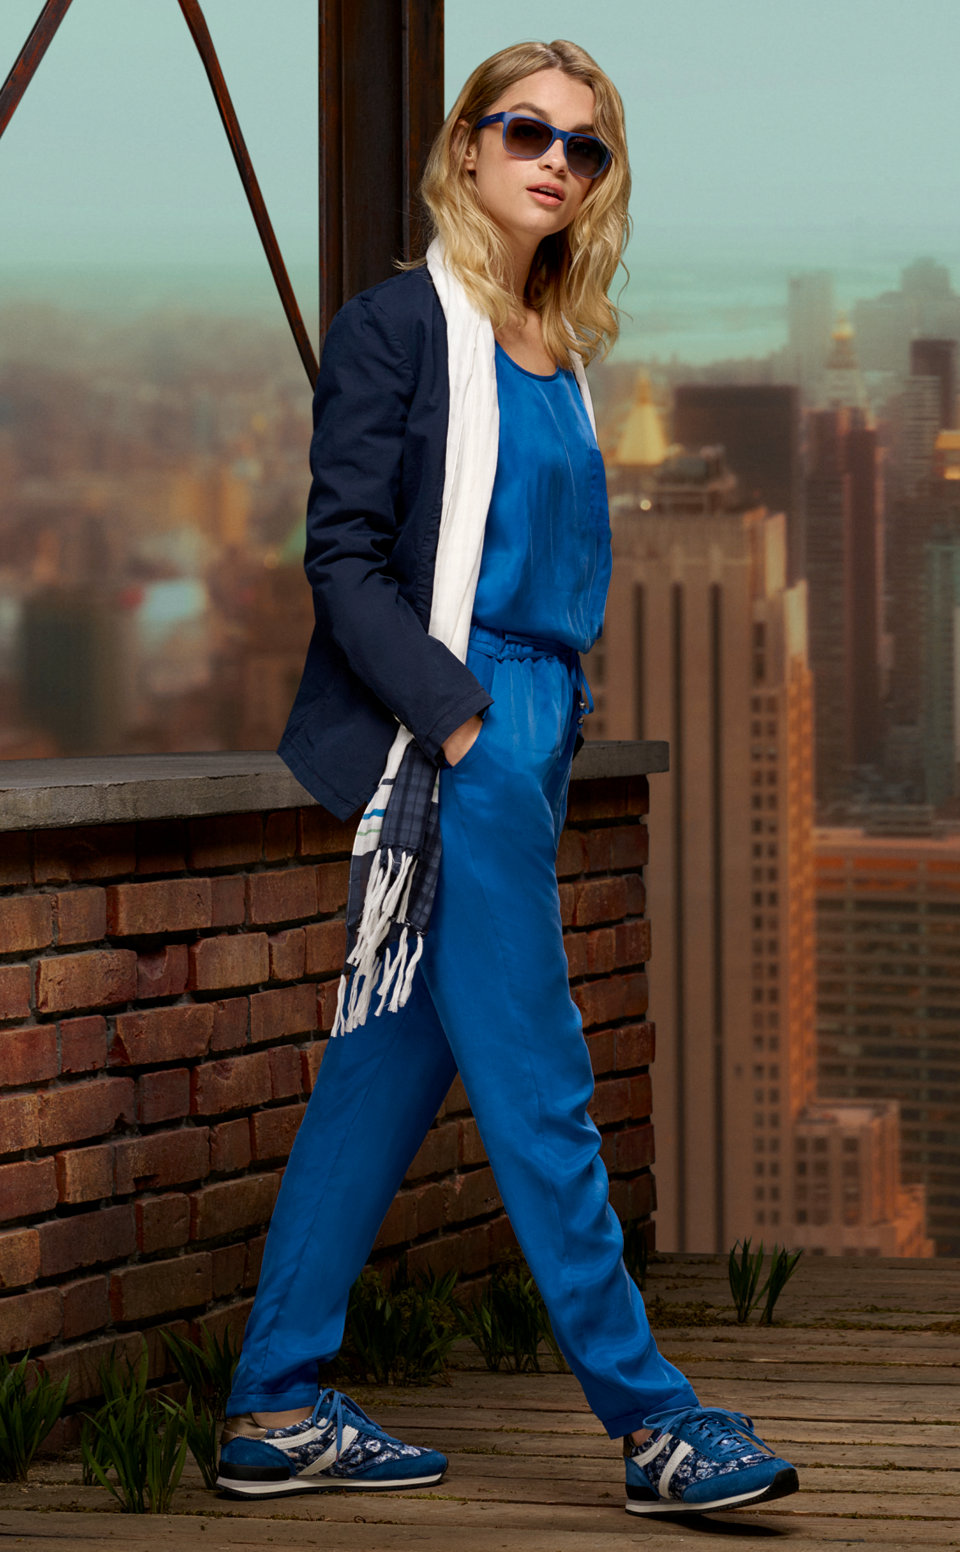 Blue jacket, blue top and blue trousers byBOSSOrange